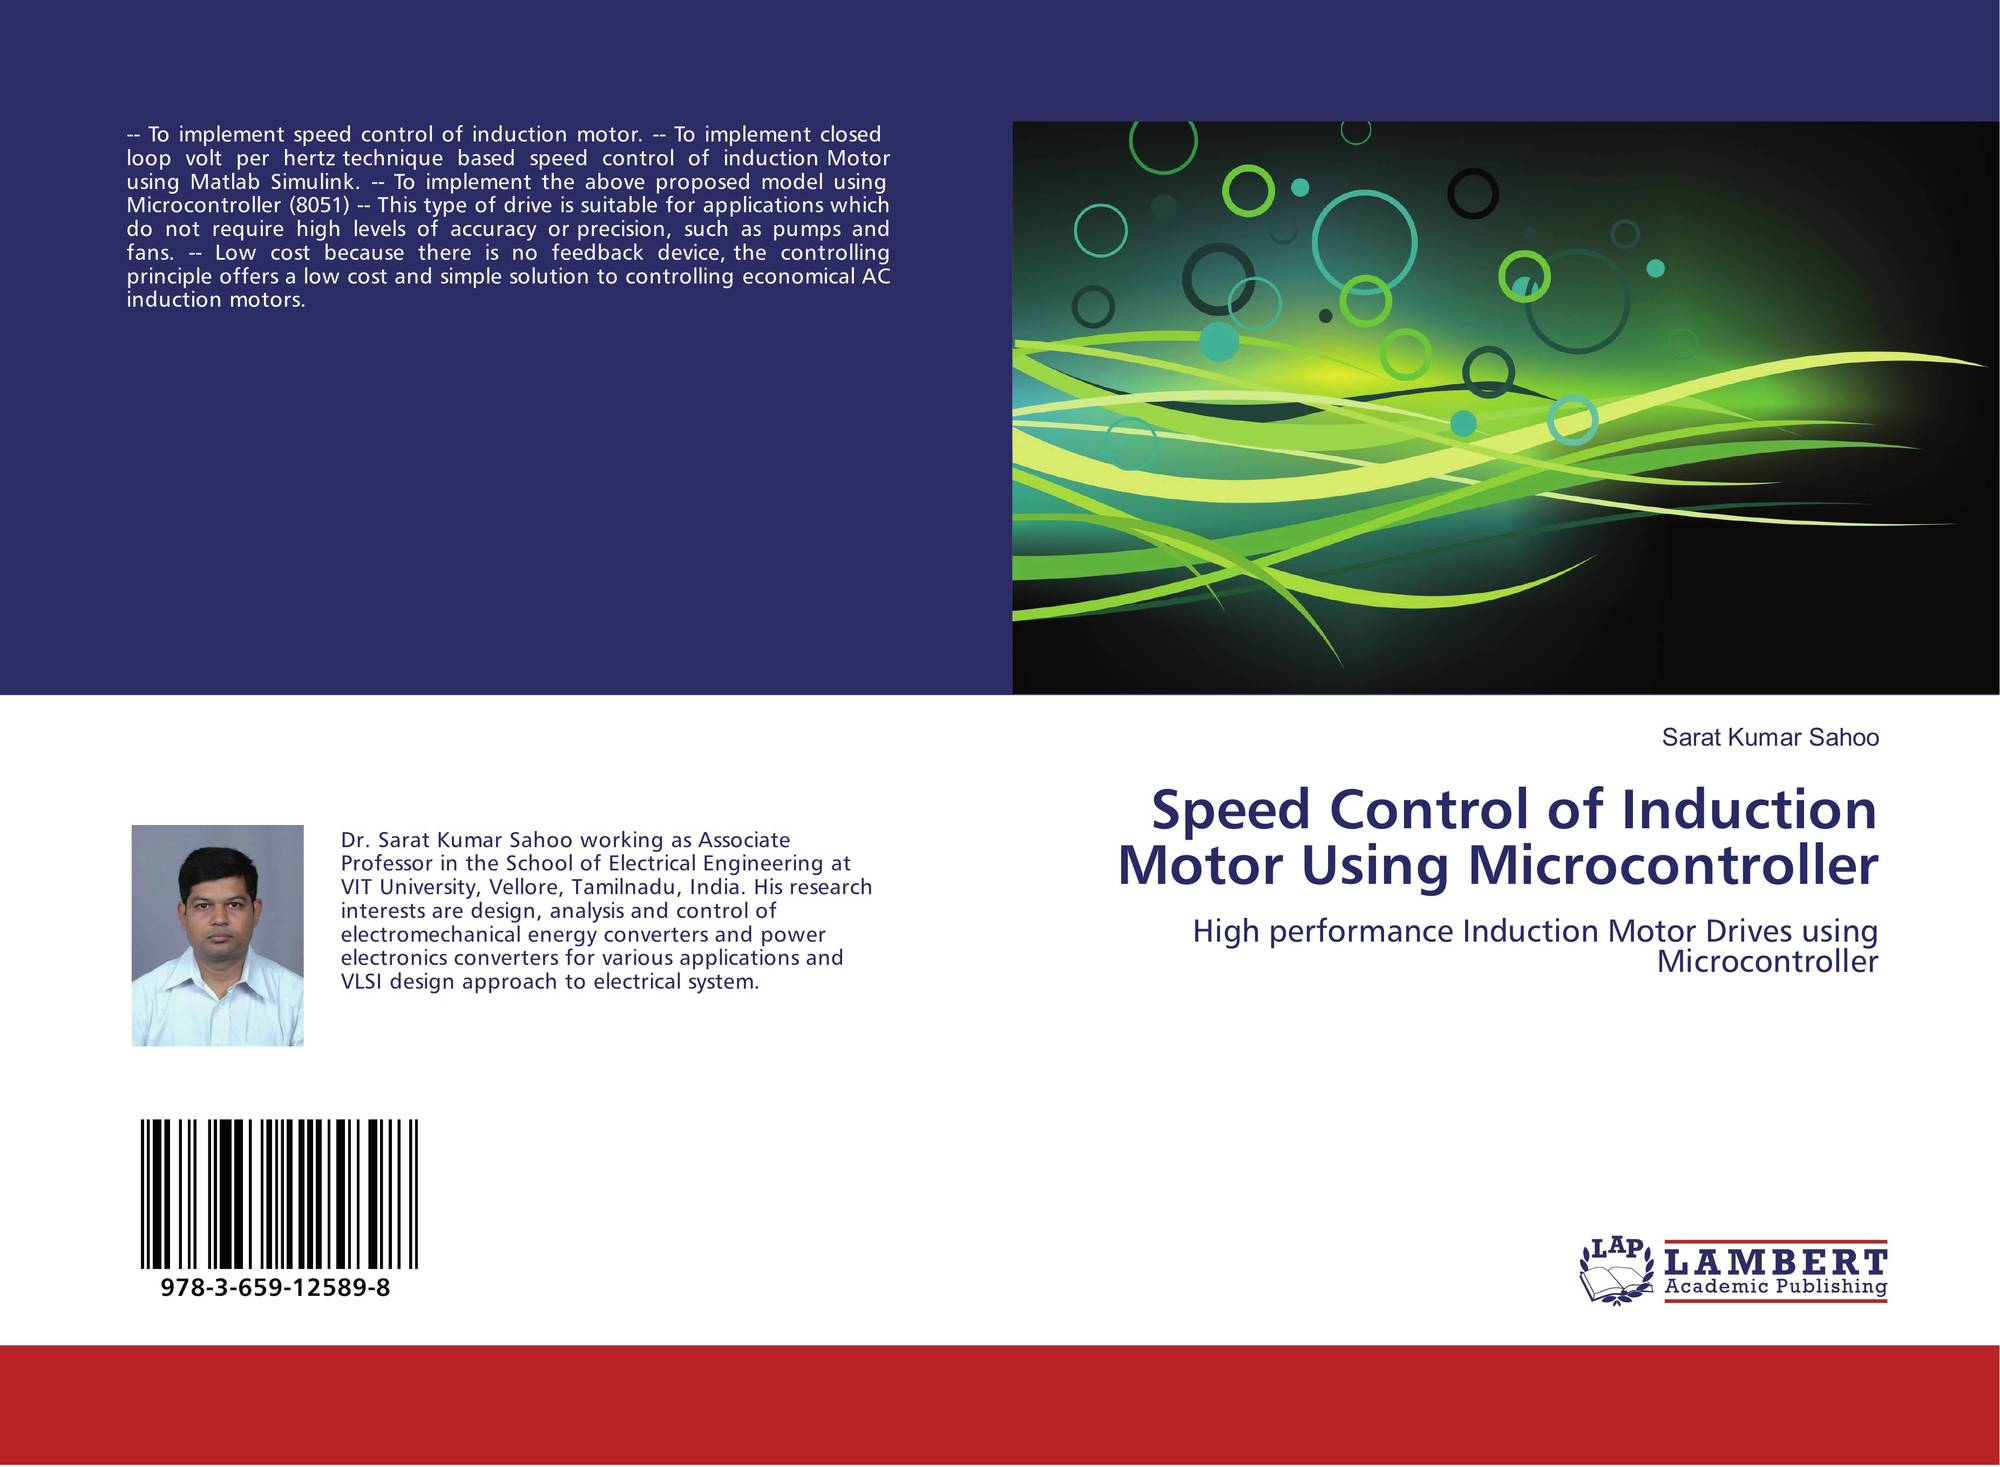 Speed control of induction motor using microcontroller for Speed control of induction motor